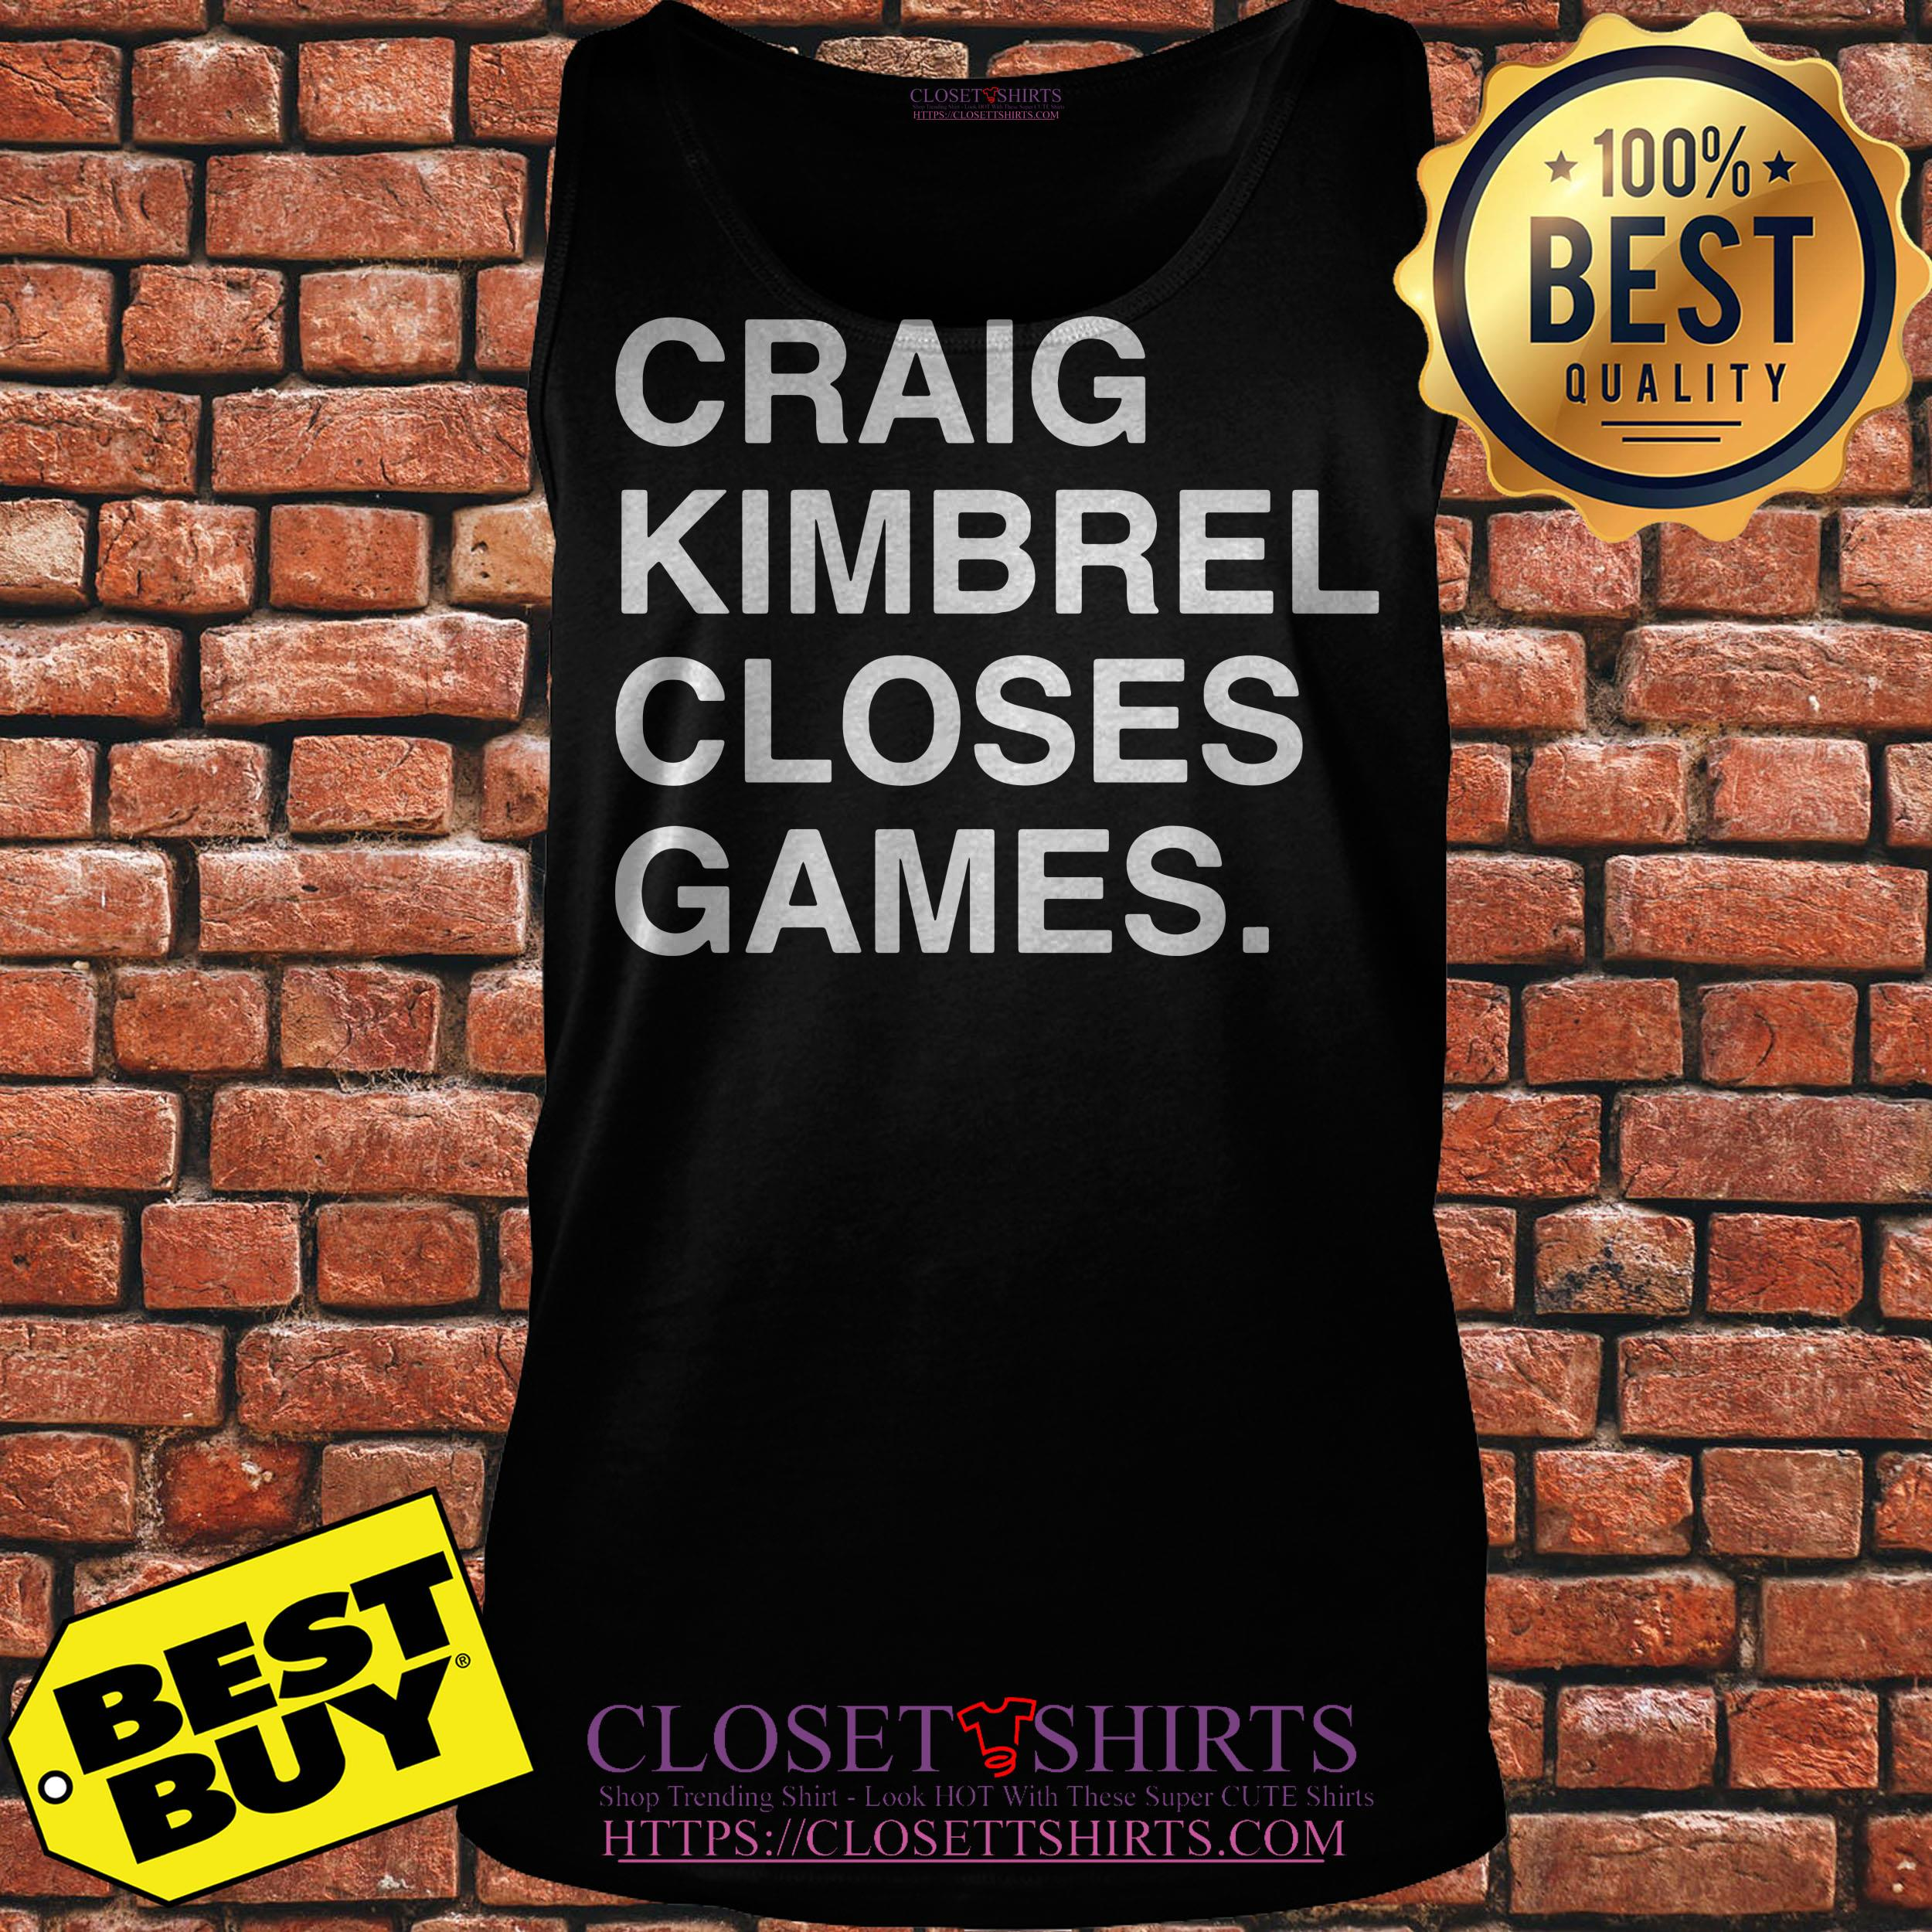 Craig Kimbrel Closes Games tank top